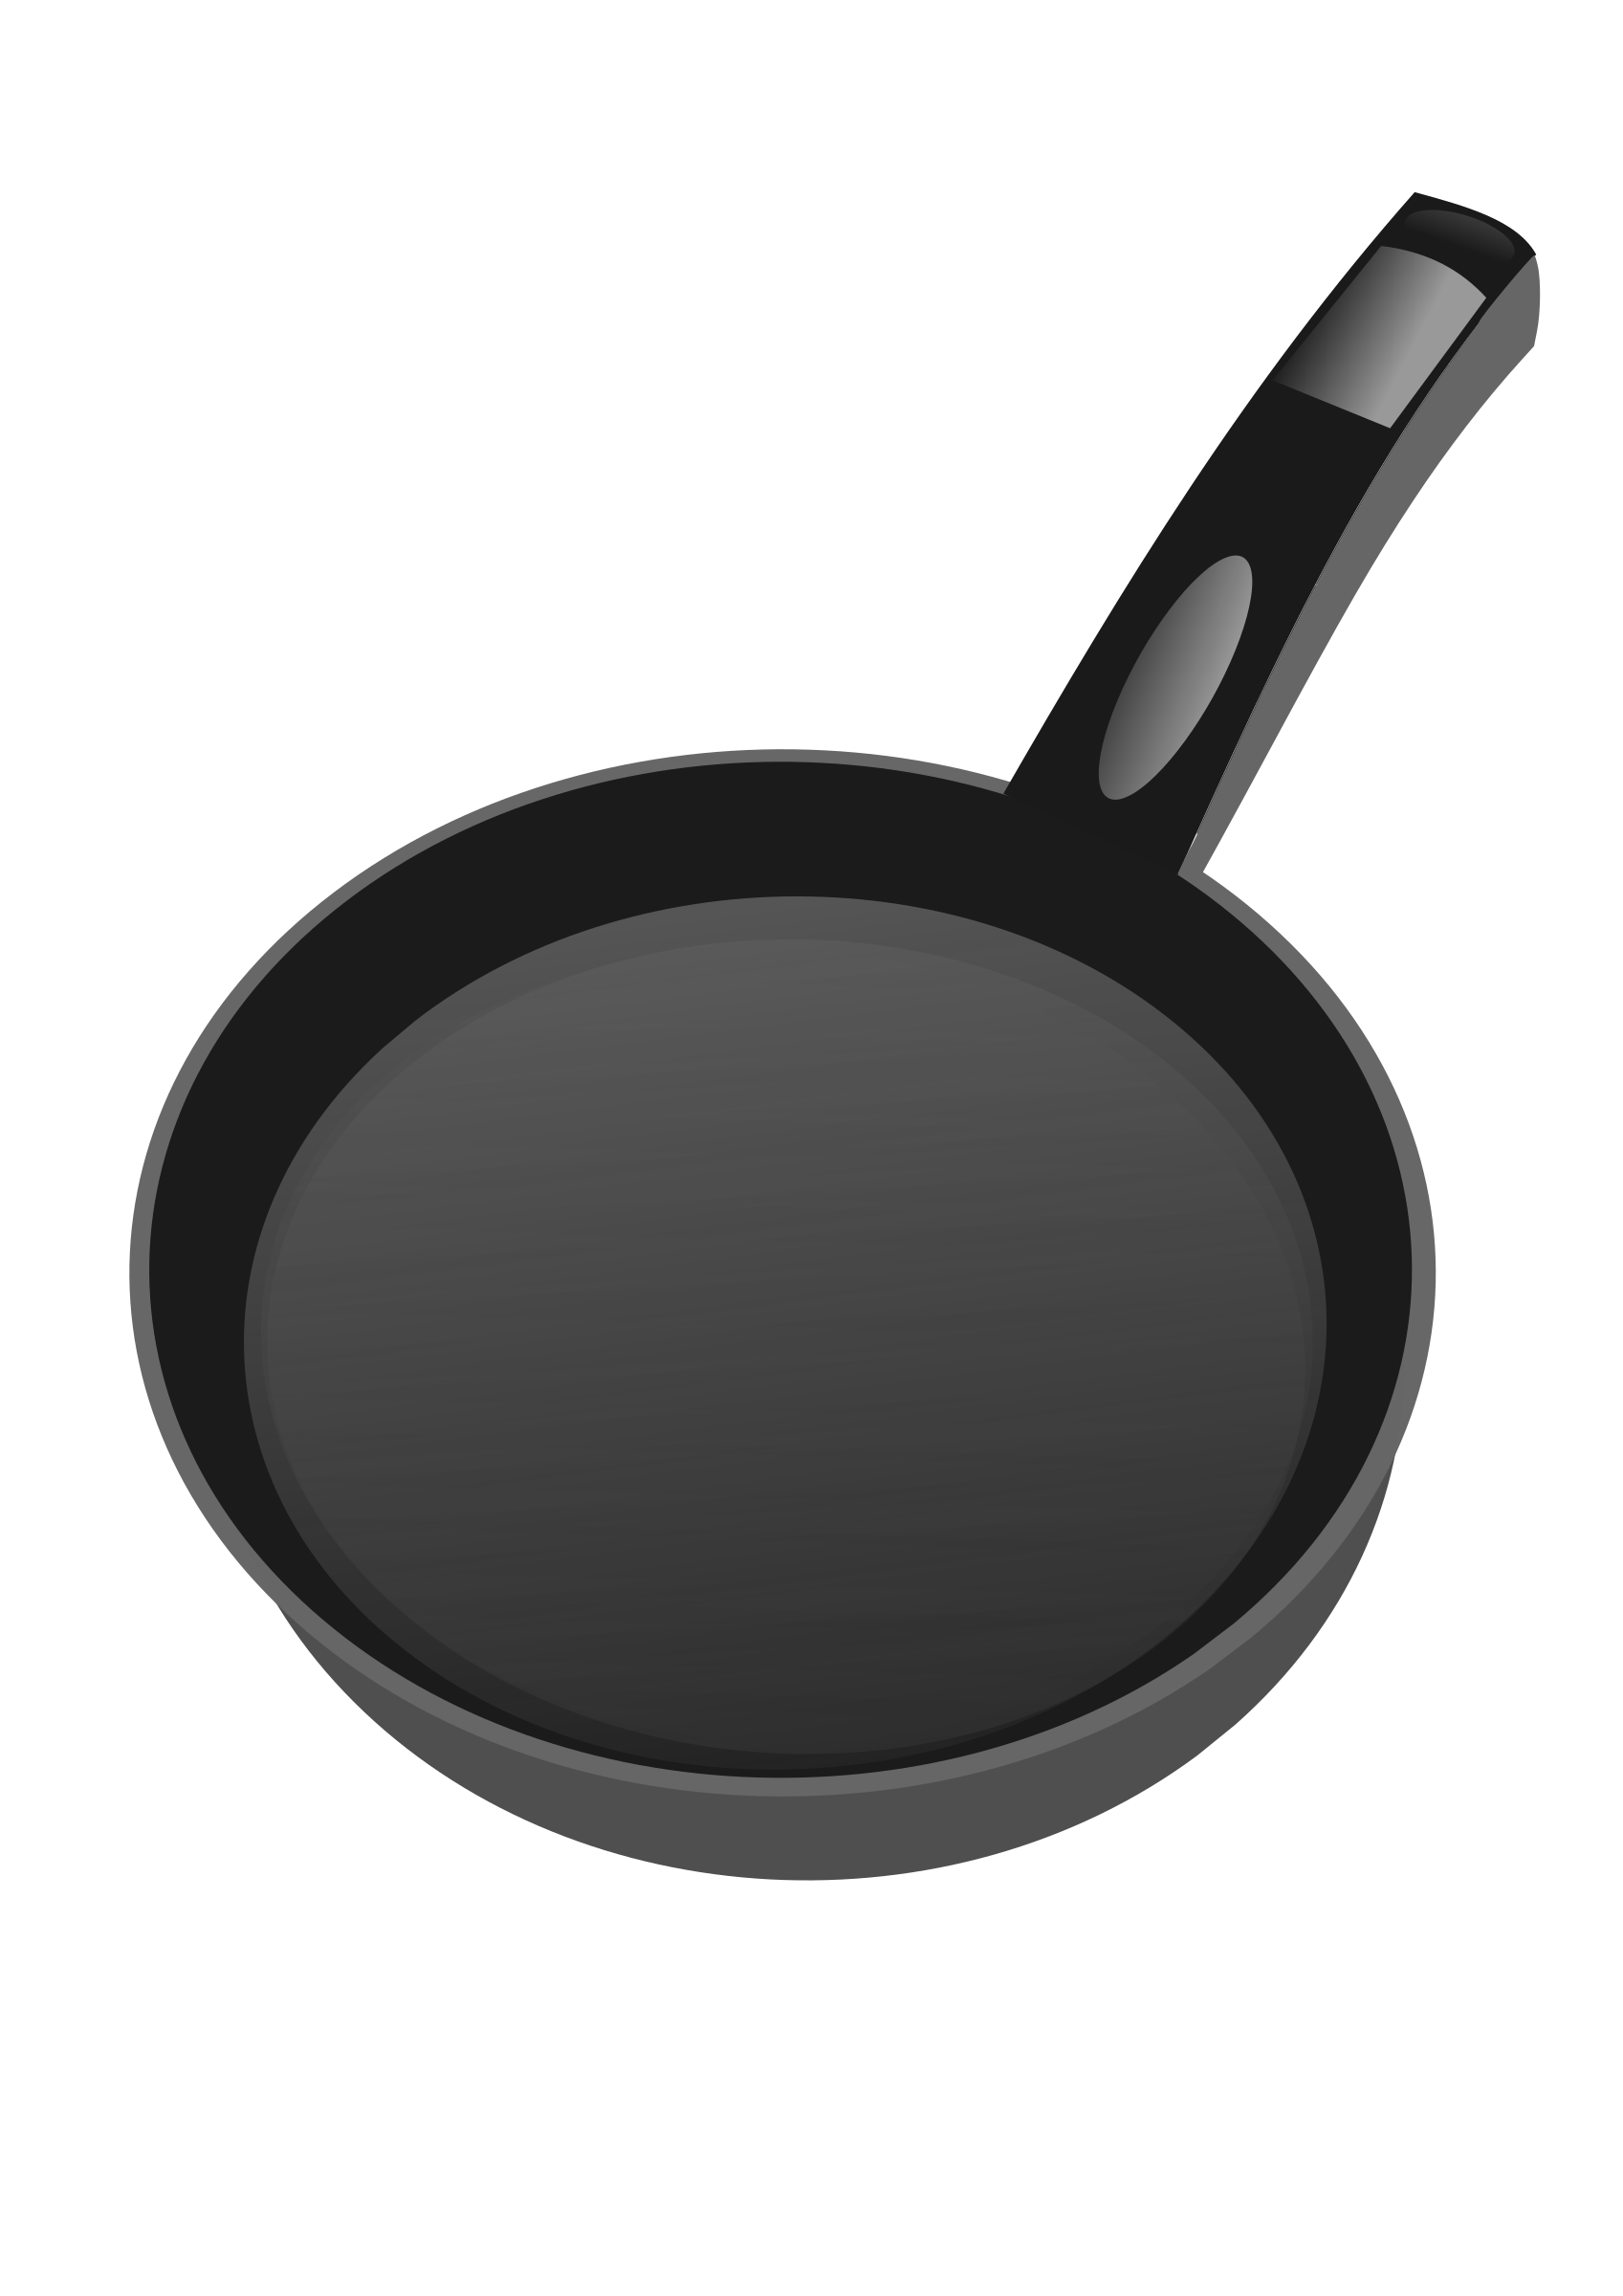 Cooking Pan Png image #43356